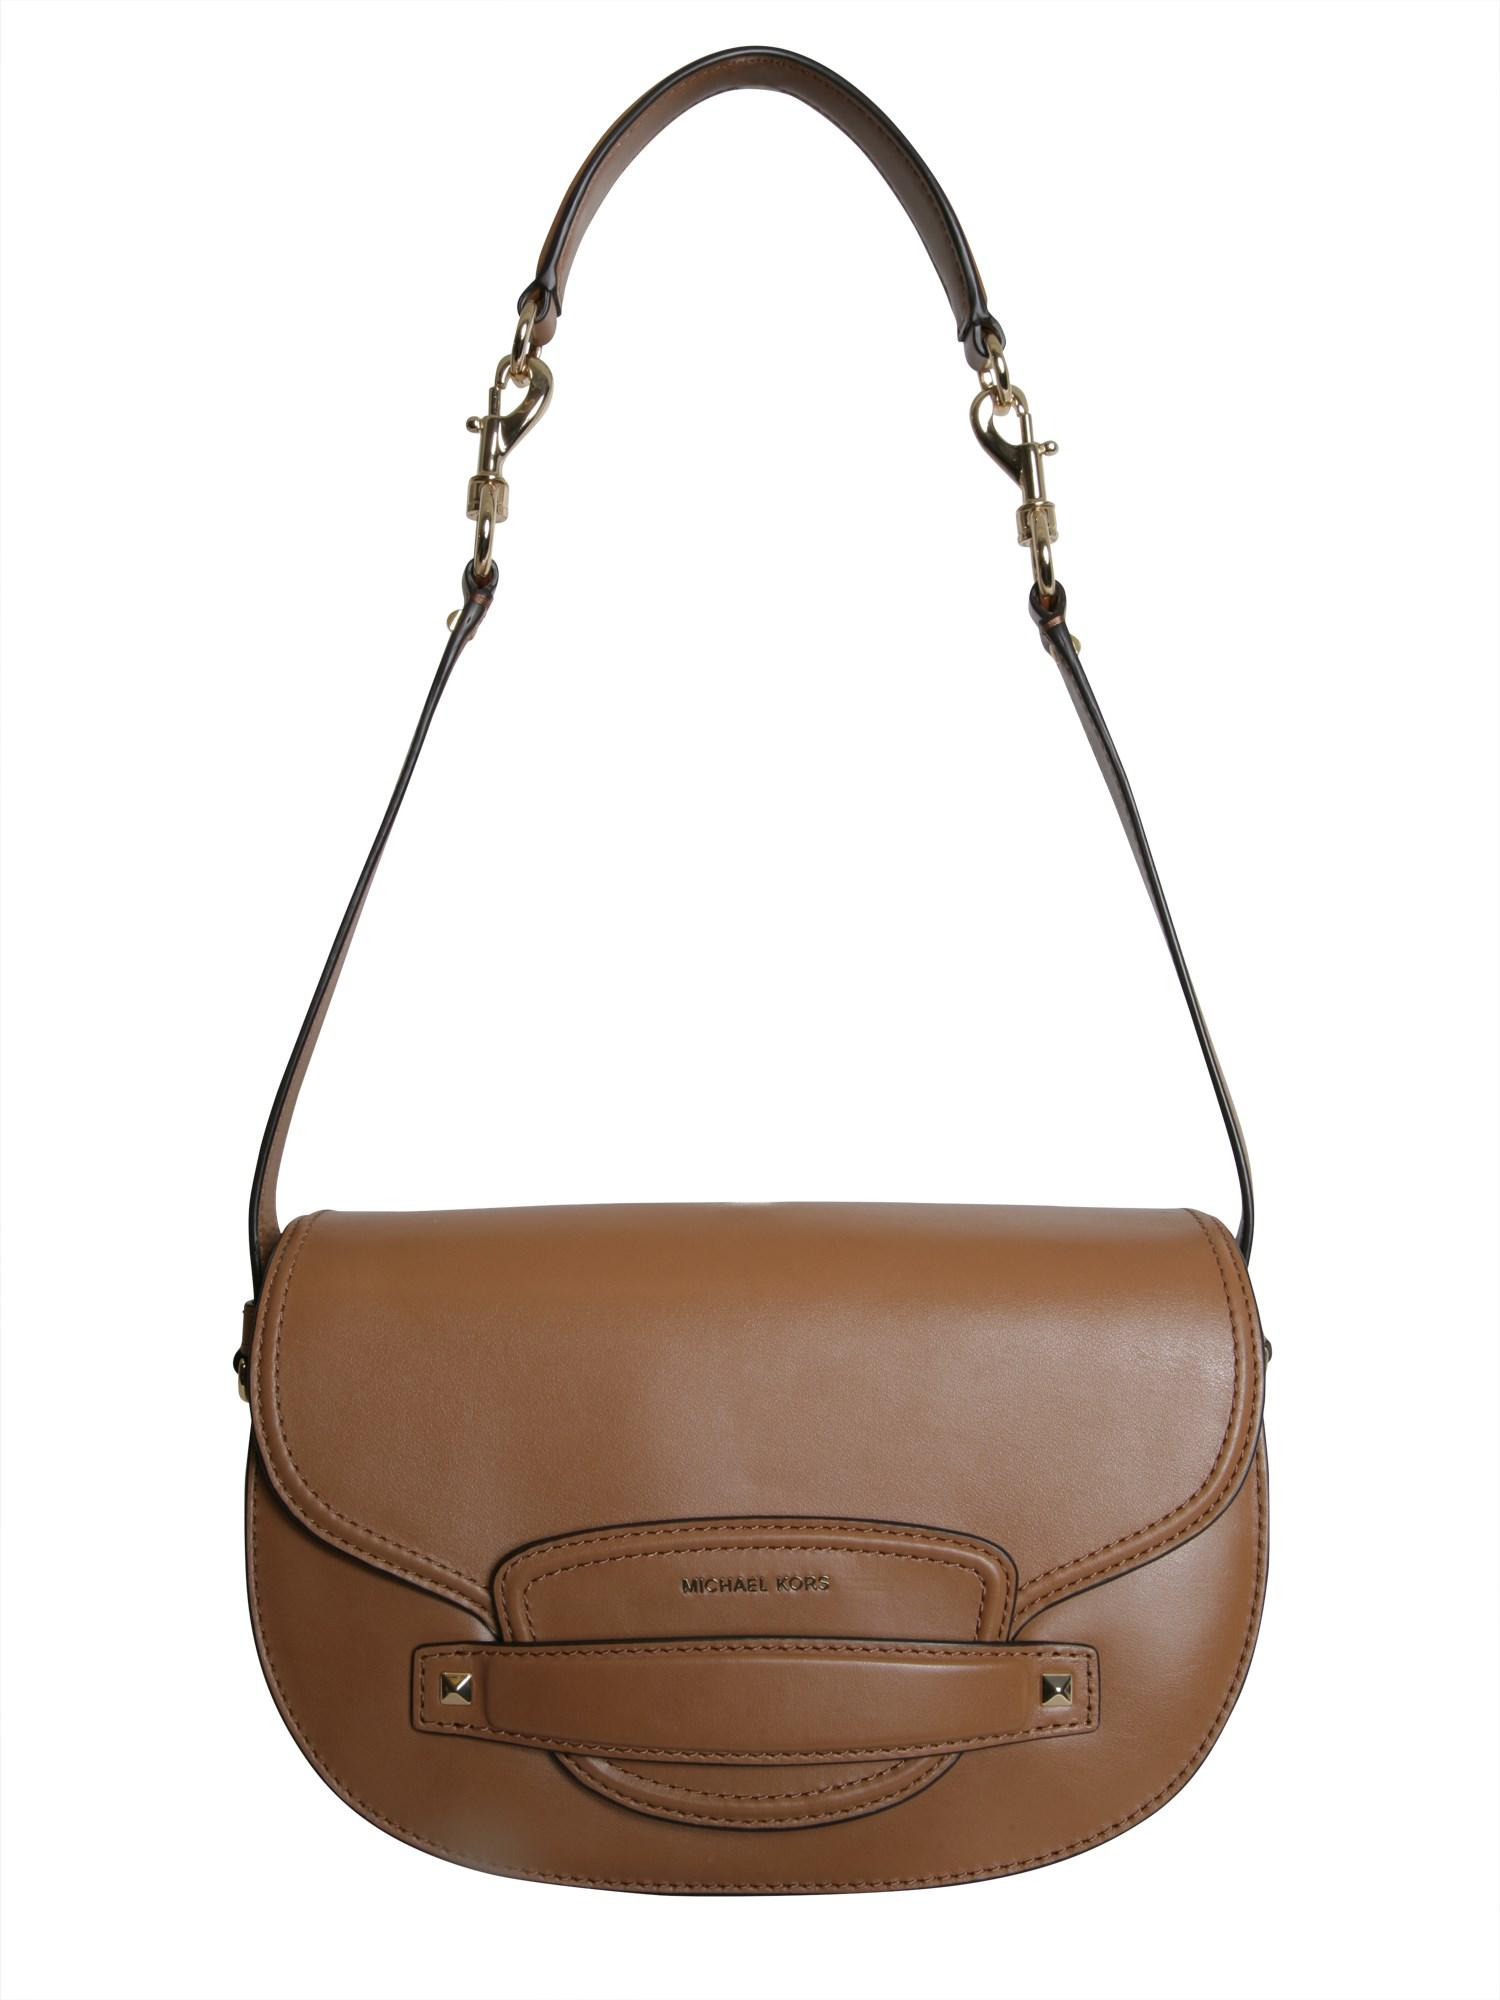 2a03a825e84c Michael Michael Kors Medium Cary Leather Shoulder Bag in Natural - Lyst